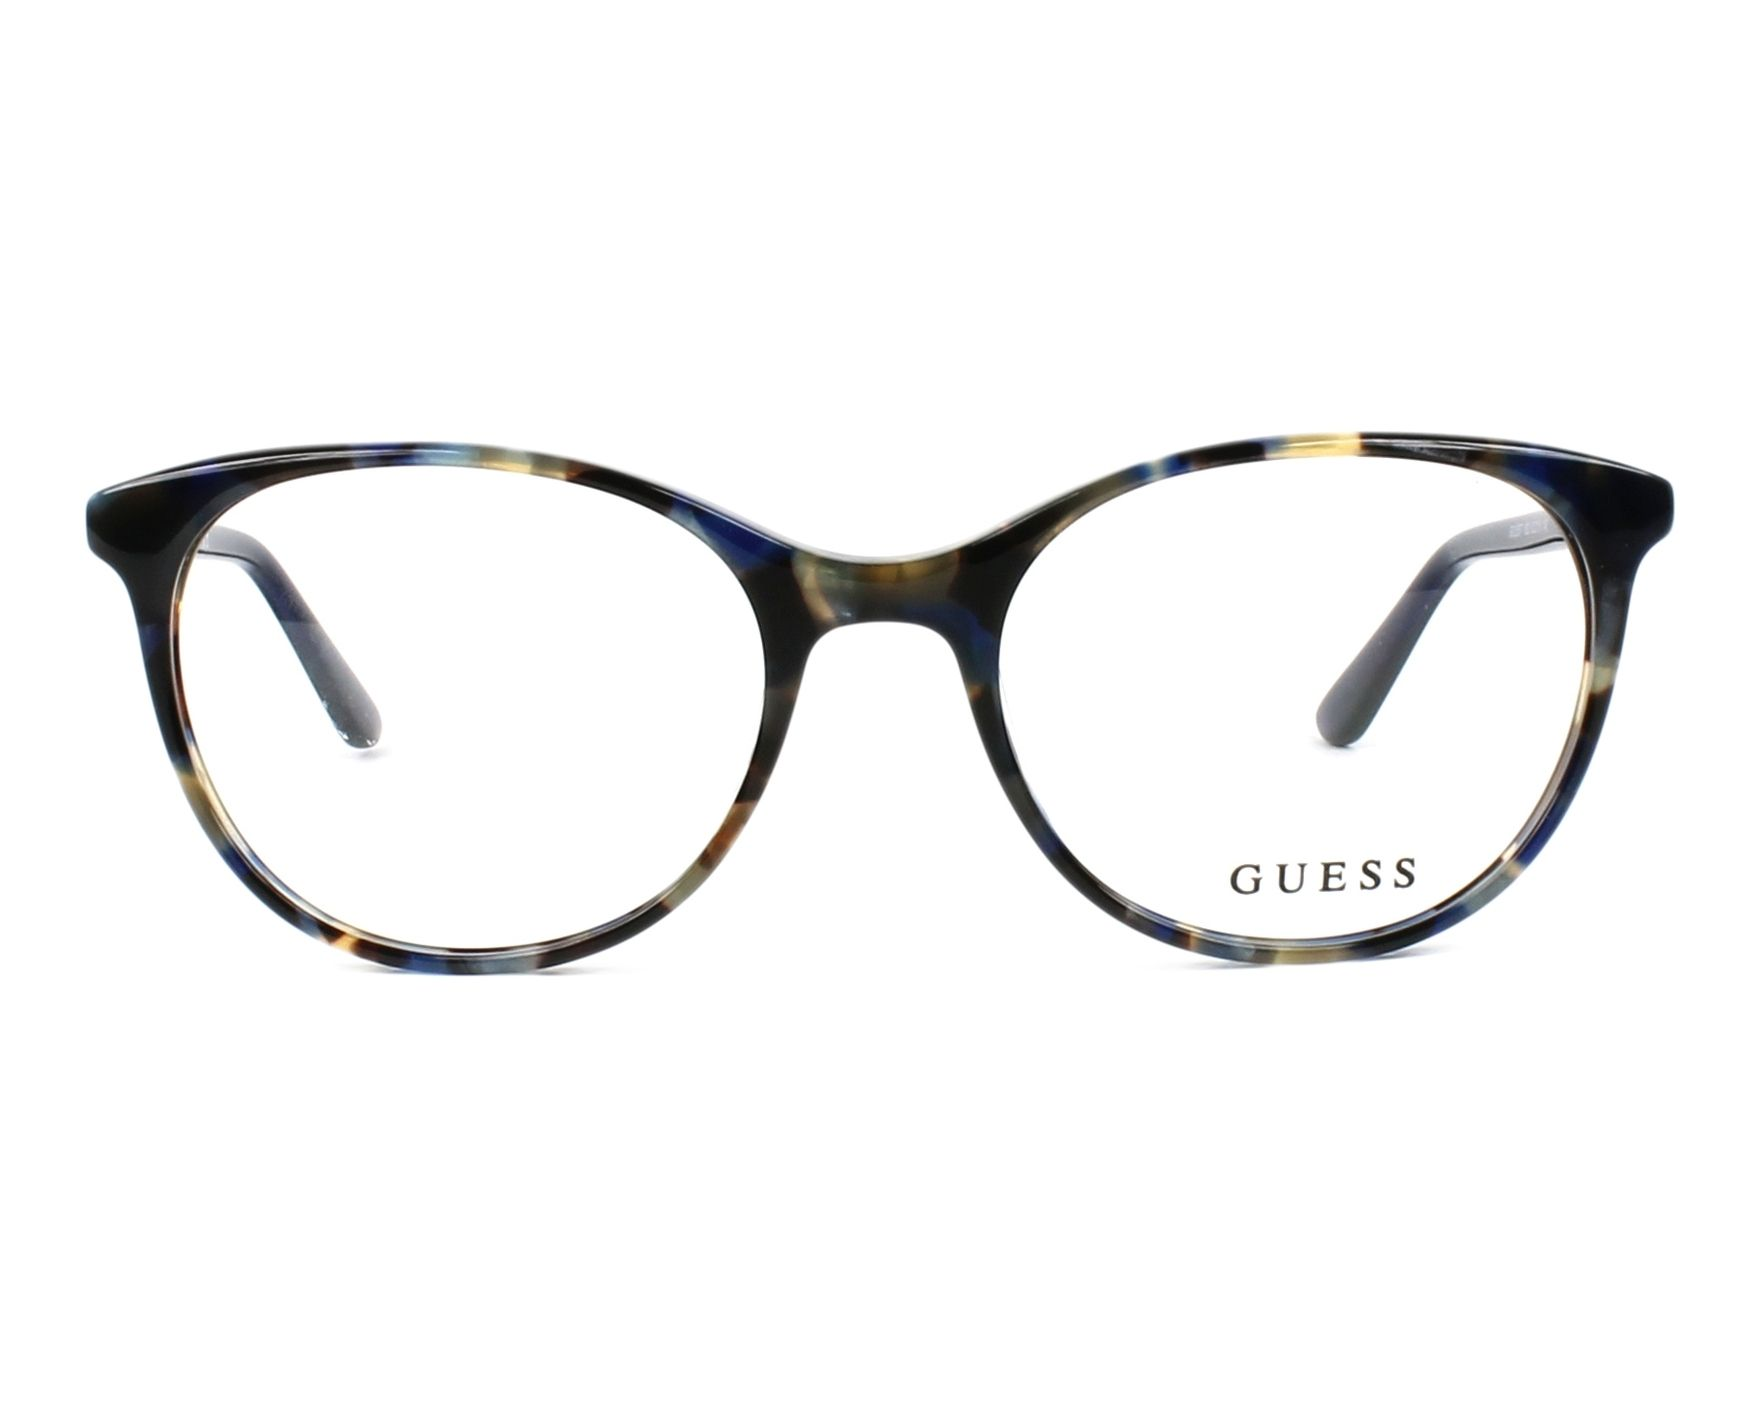 NEW Authentic Guess EyeGlasses frames GU-2657 092 | eBay